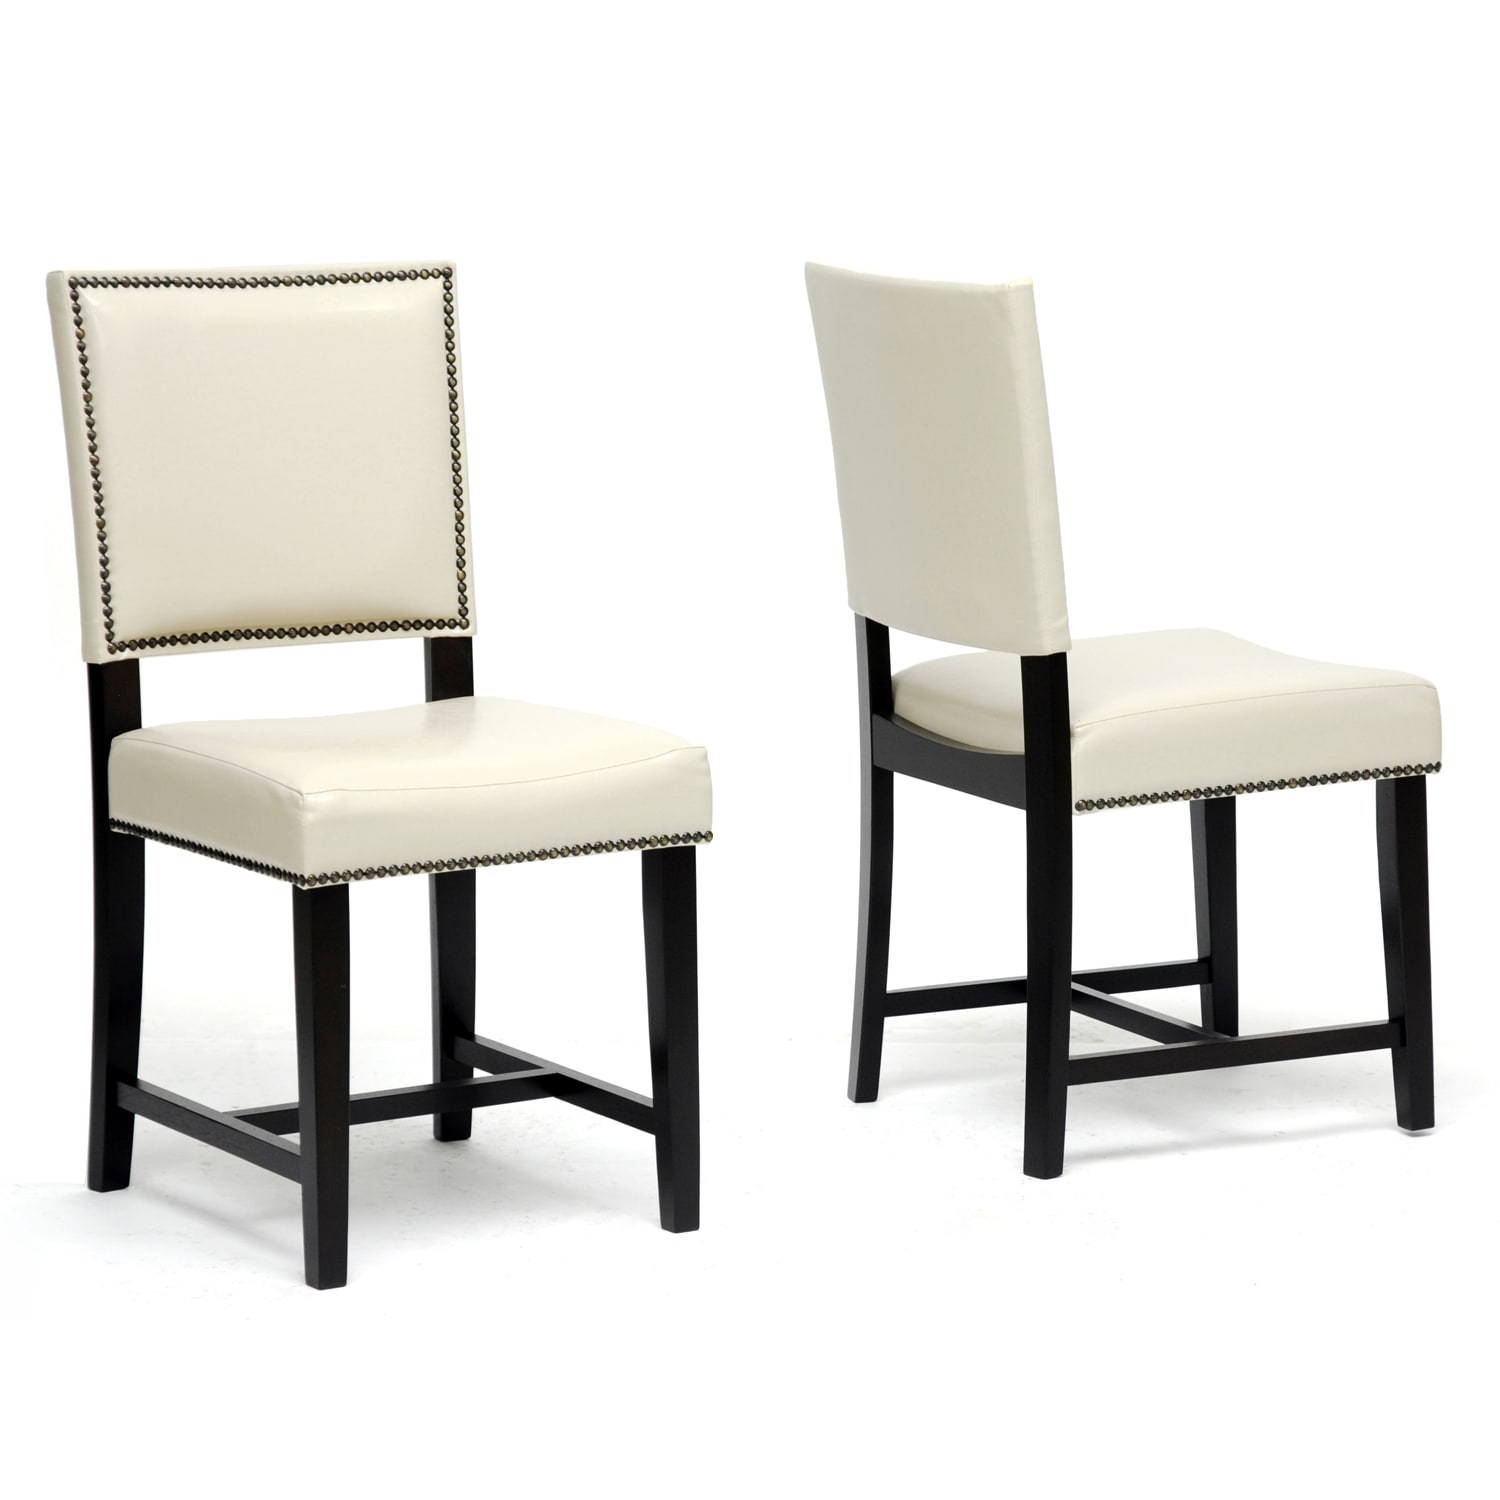 Baxton studio dining chairs overstock shopping the best prices online - Modern leather dining room chairs ...